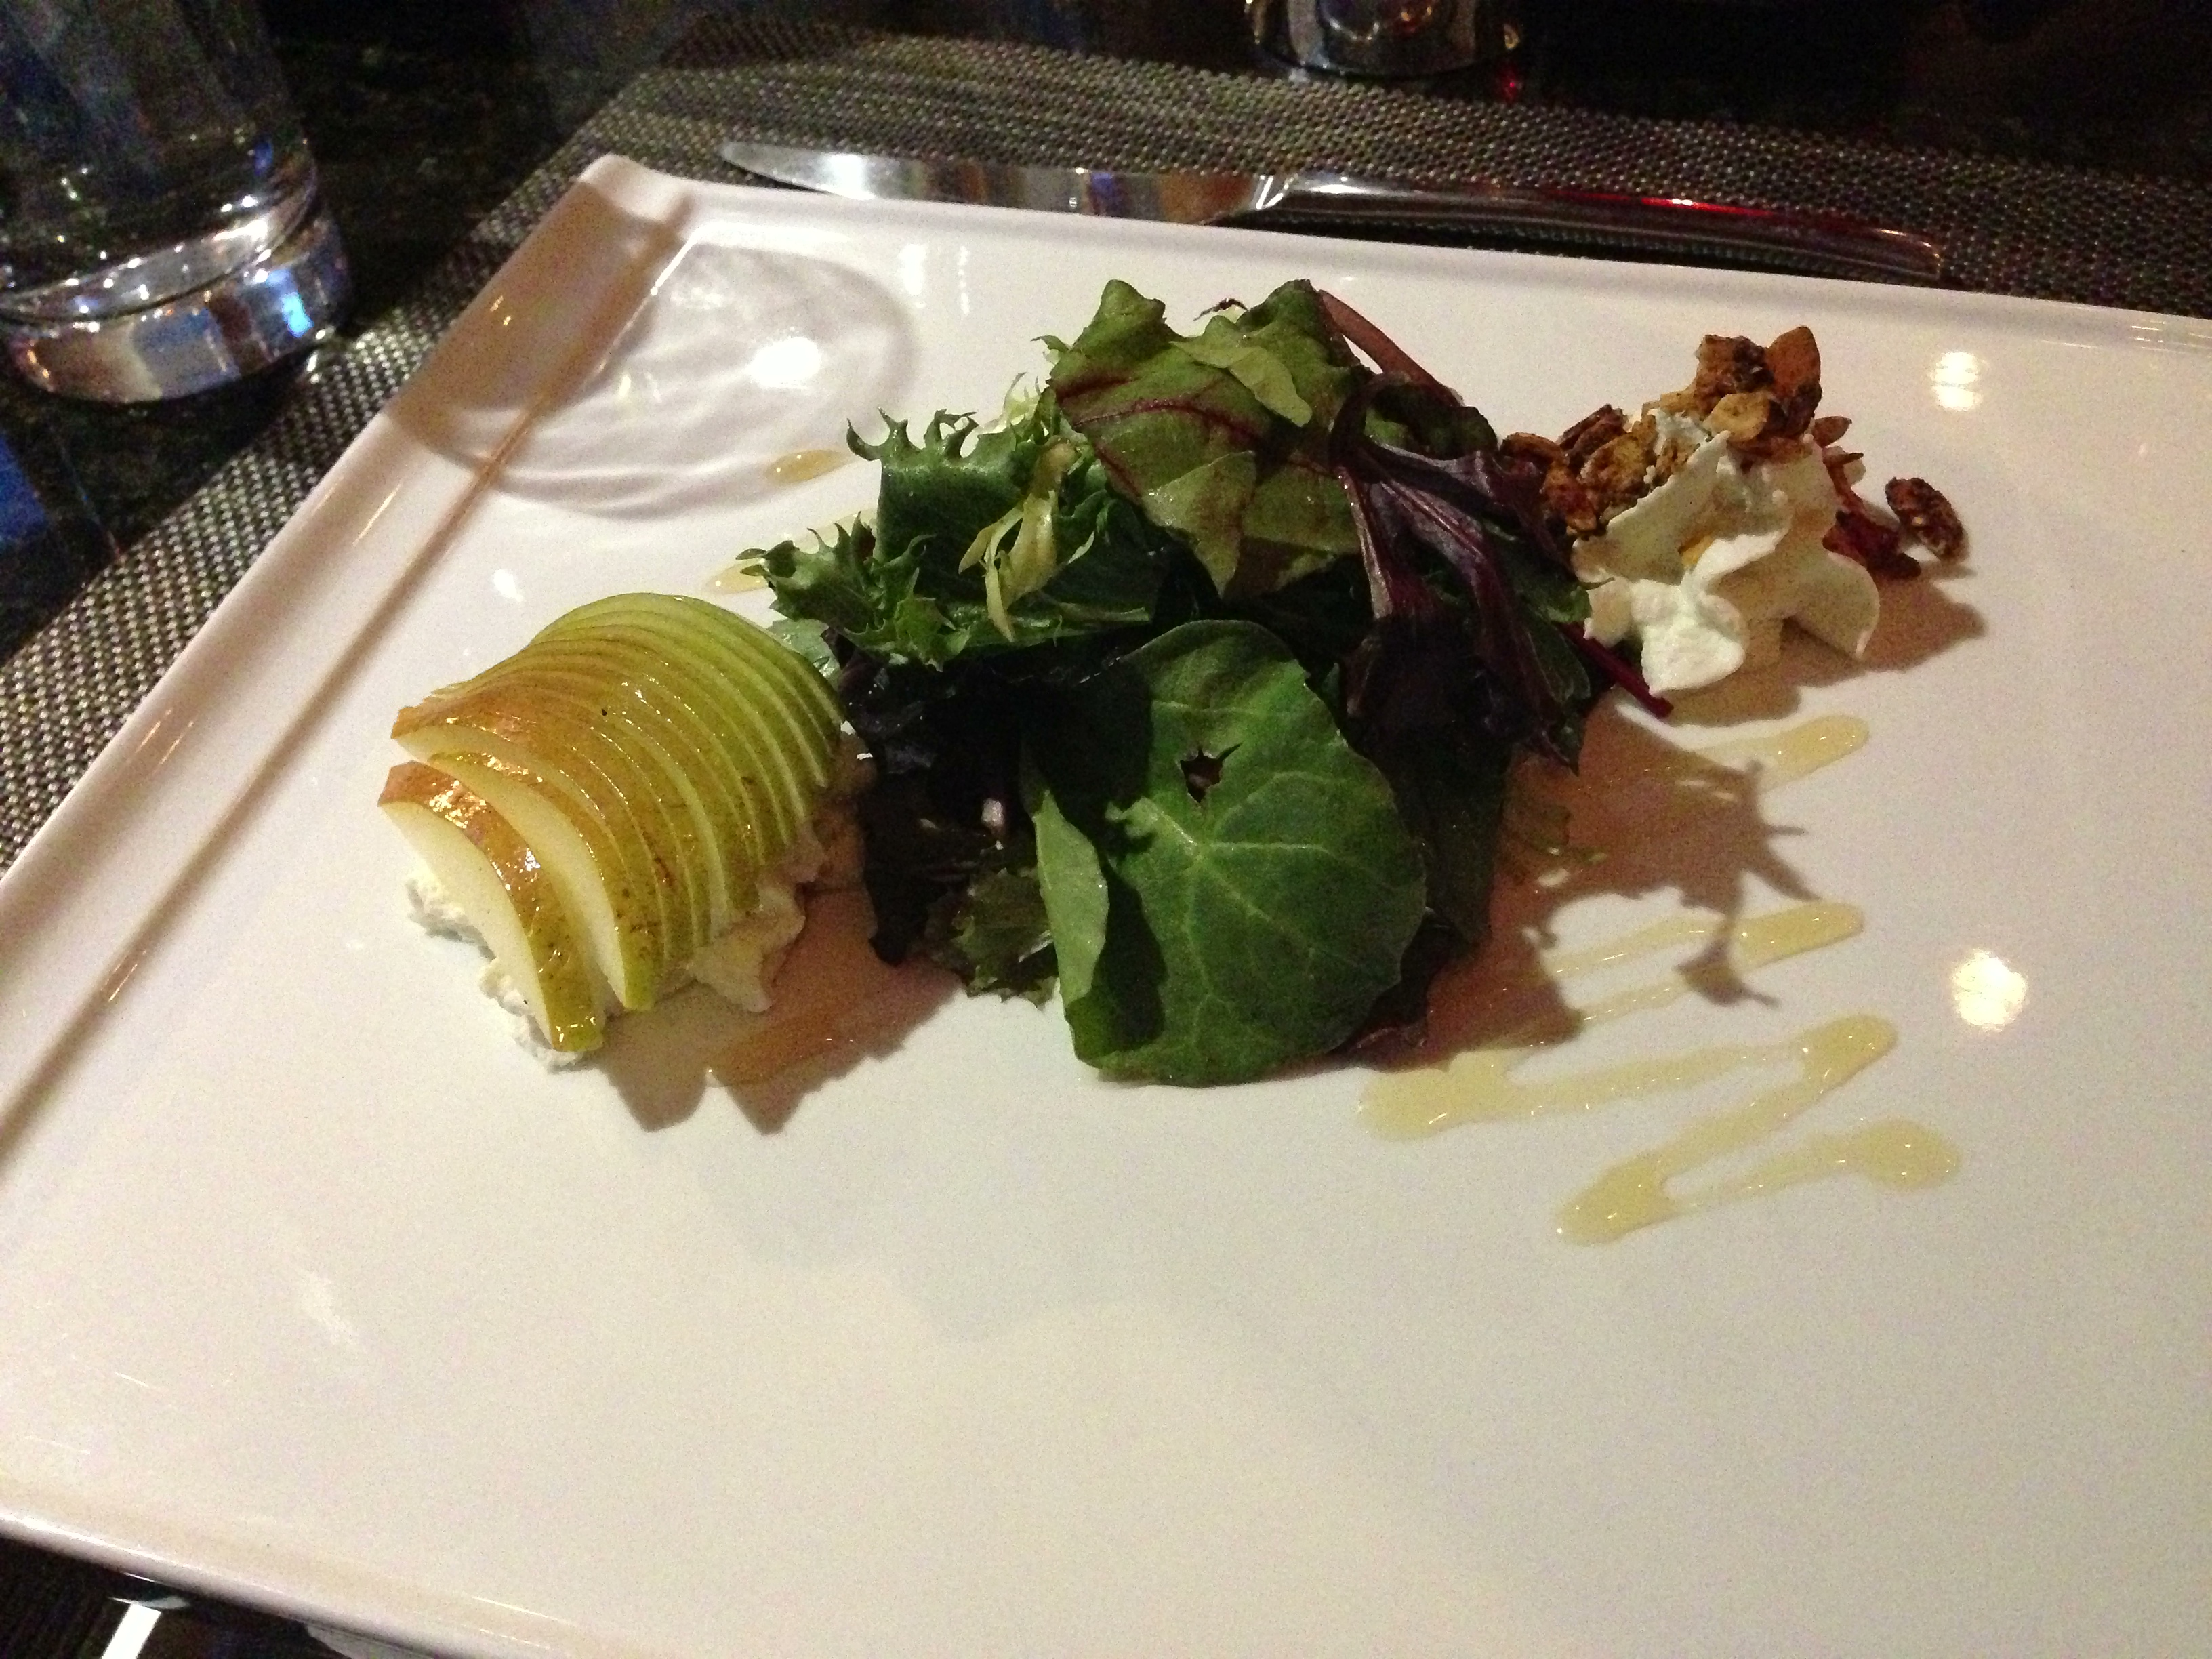 Pear salad: whipped goat cheese, toasted almonds, mixed green, mead vinaigrette, honey drizzle.